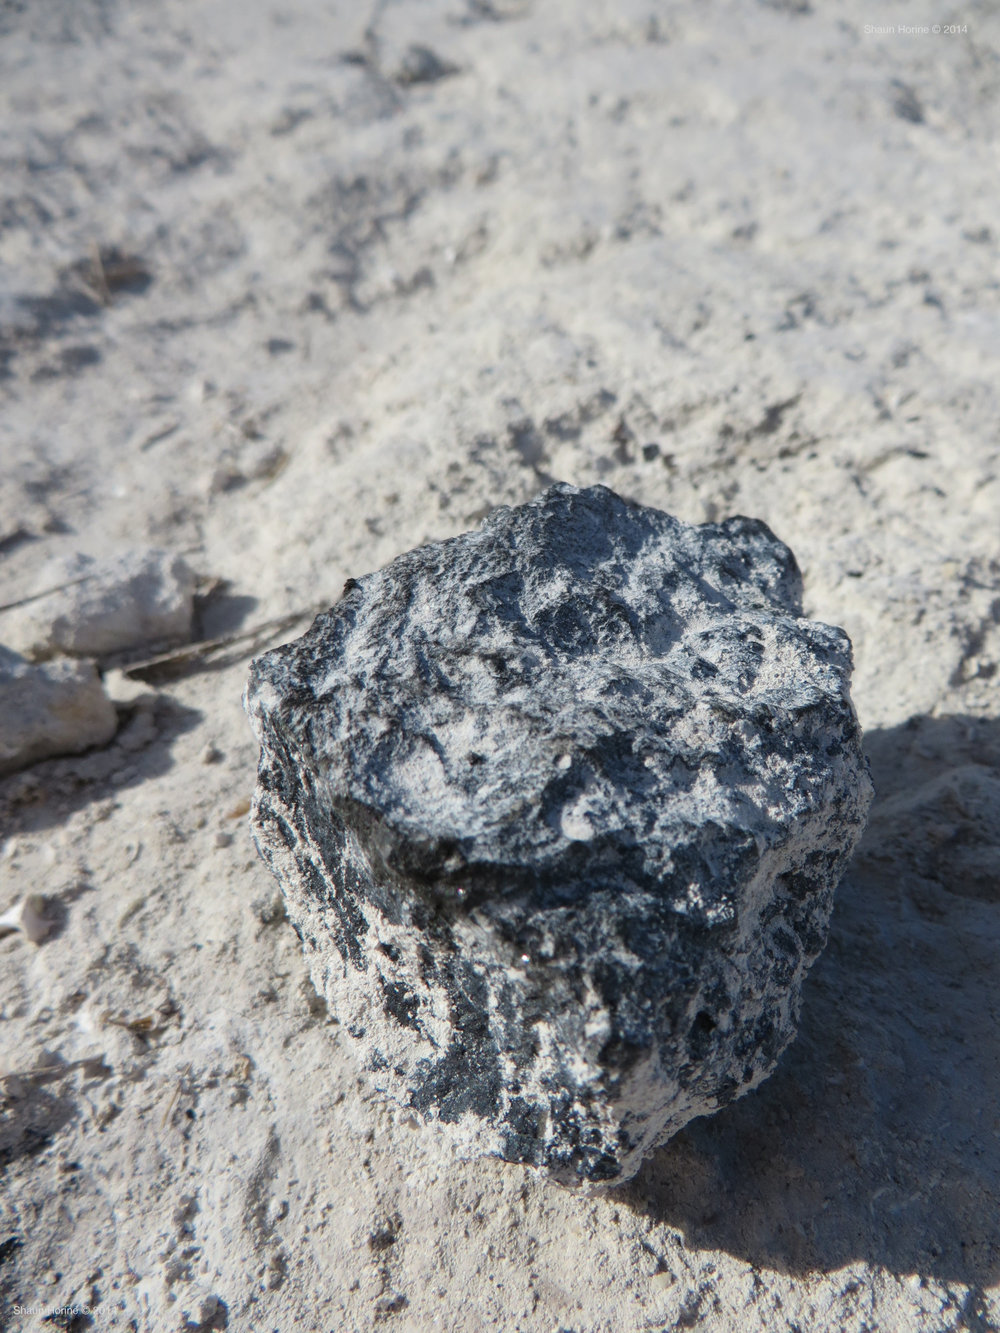 Just a rock in the sand in the Florida Keys.  Macro shot Canon SX280 HS.